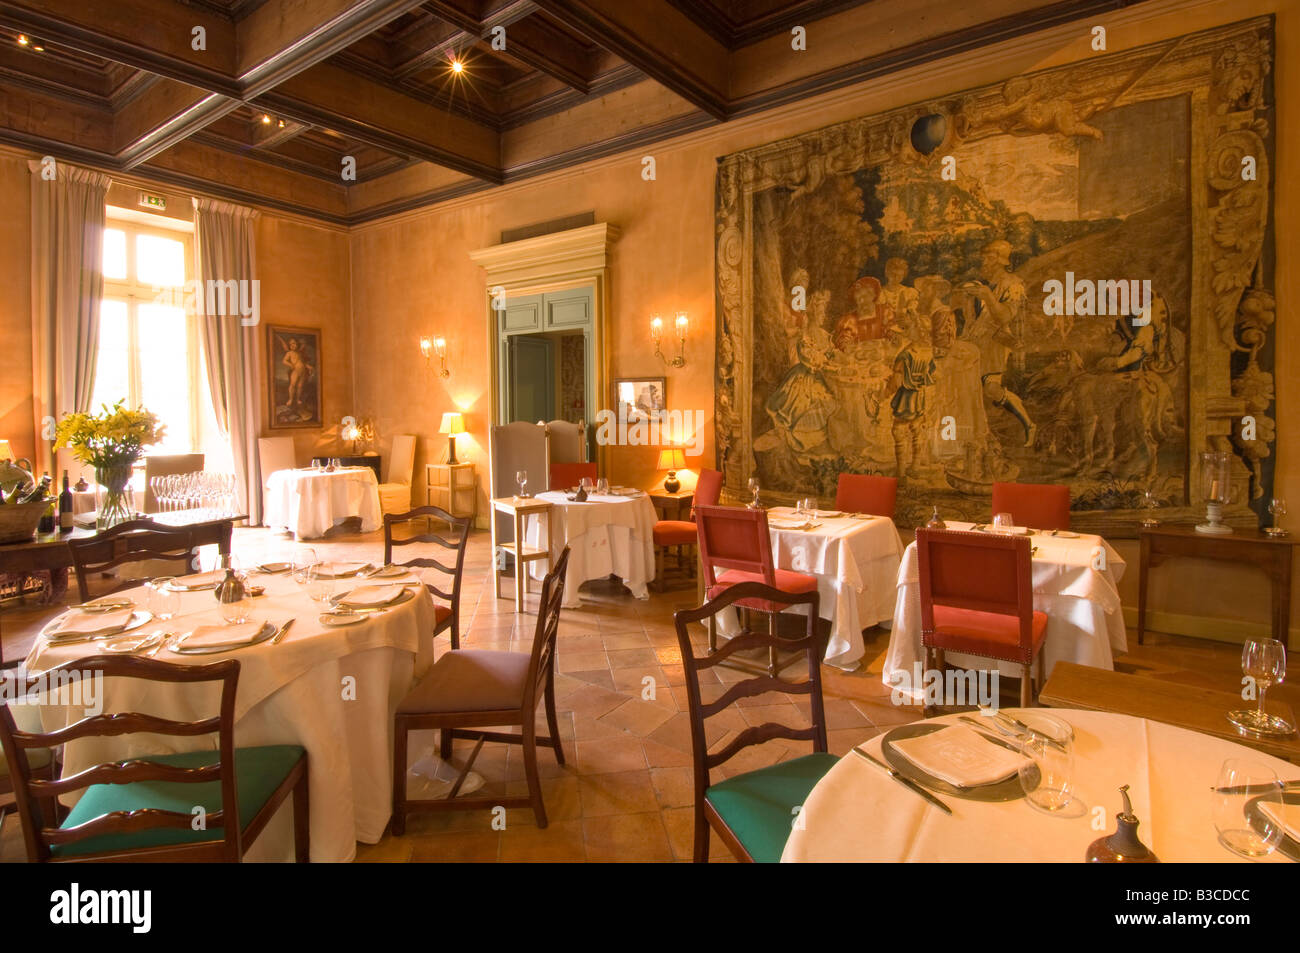 europe france provence avignon la mirande hotel restaurant tapestry stock photo royalty free. Black Bedroom Furniture Sets. Home Design Ideas